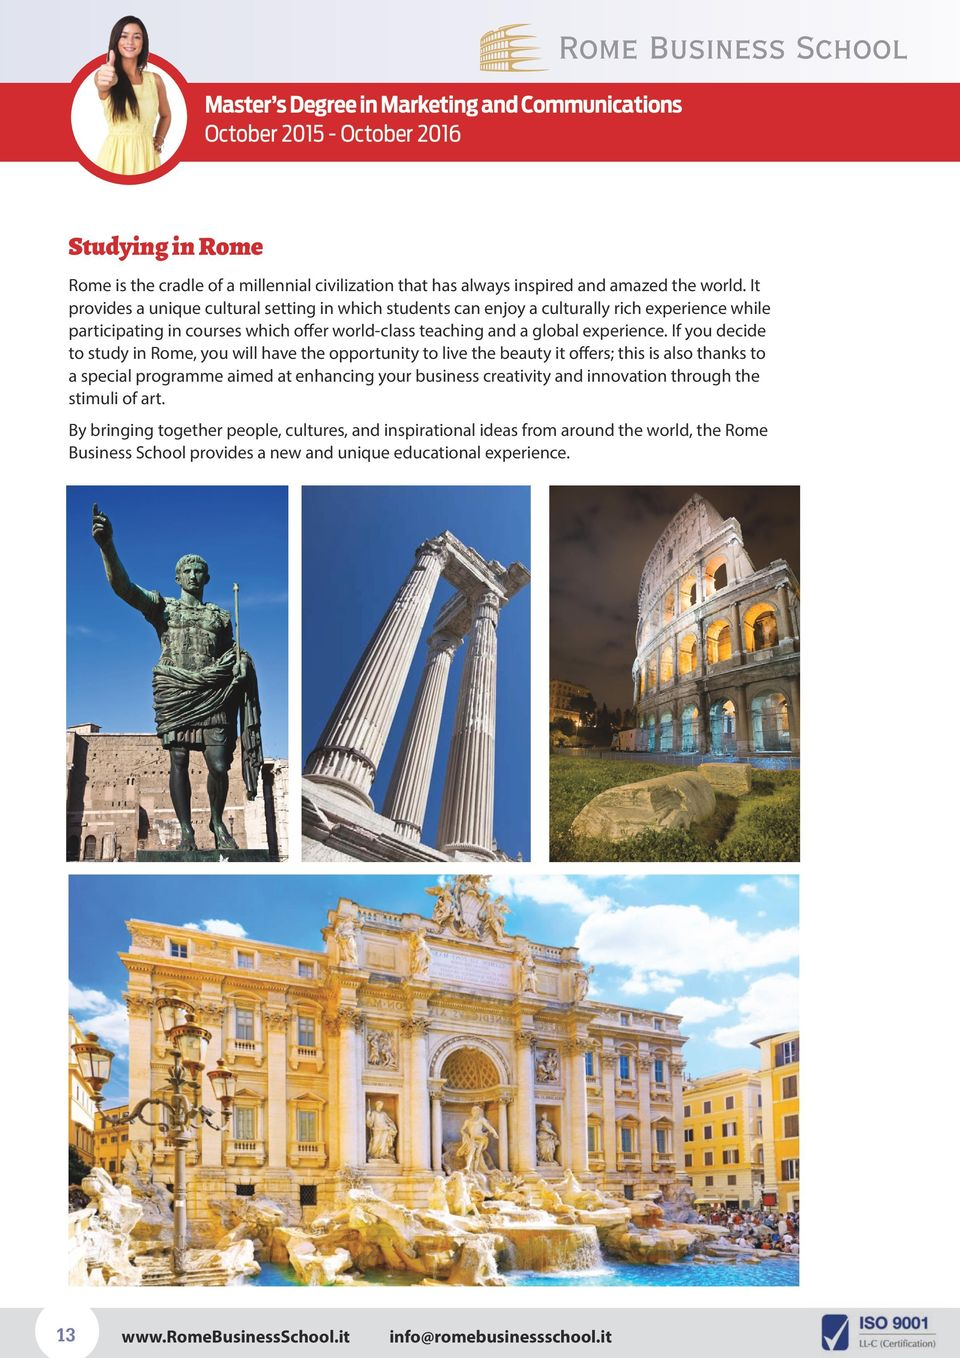 If you decide to study in Rome, you will have the opportunity to live the beauty it offers; this is also thanks to a special programme aimed at enhancing your business creativity and